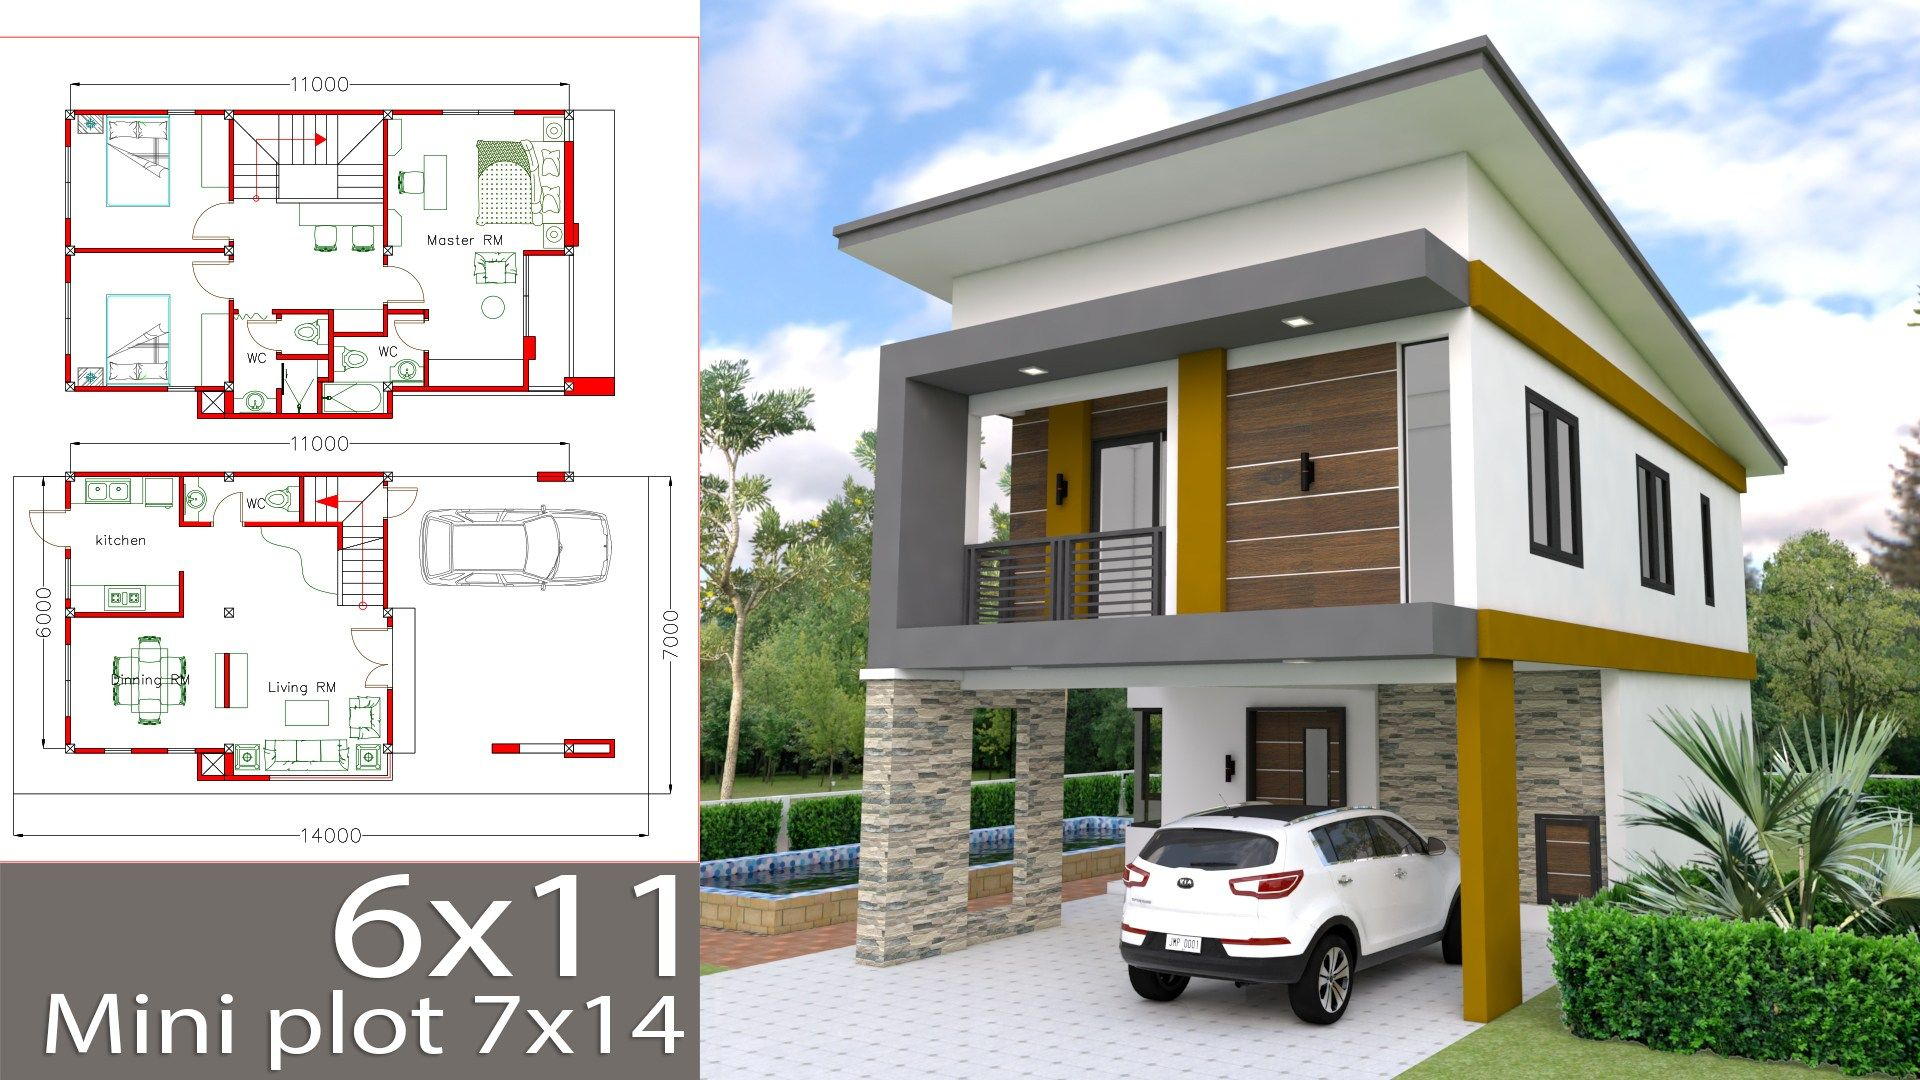 Small Home Design Plan 6x11m With 3 Bedrooms (With Images